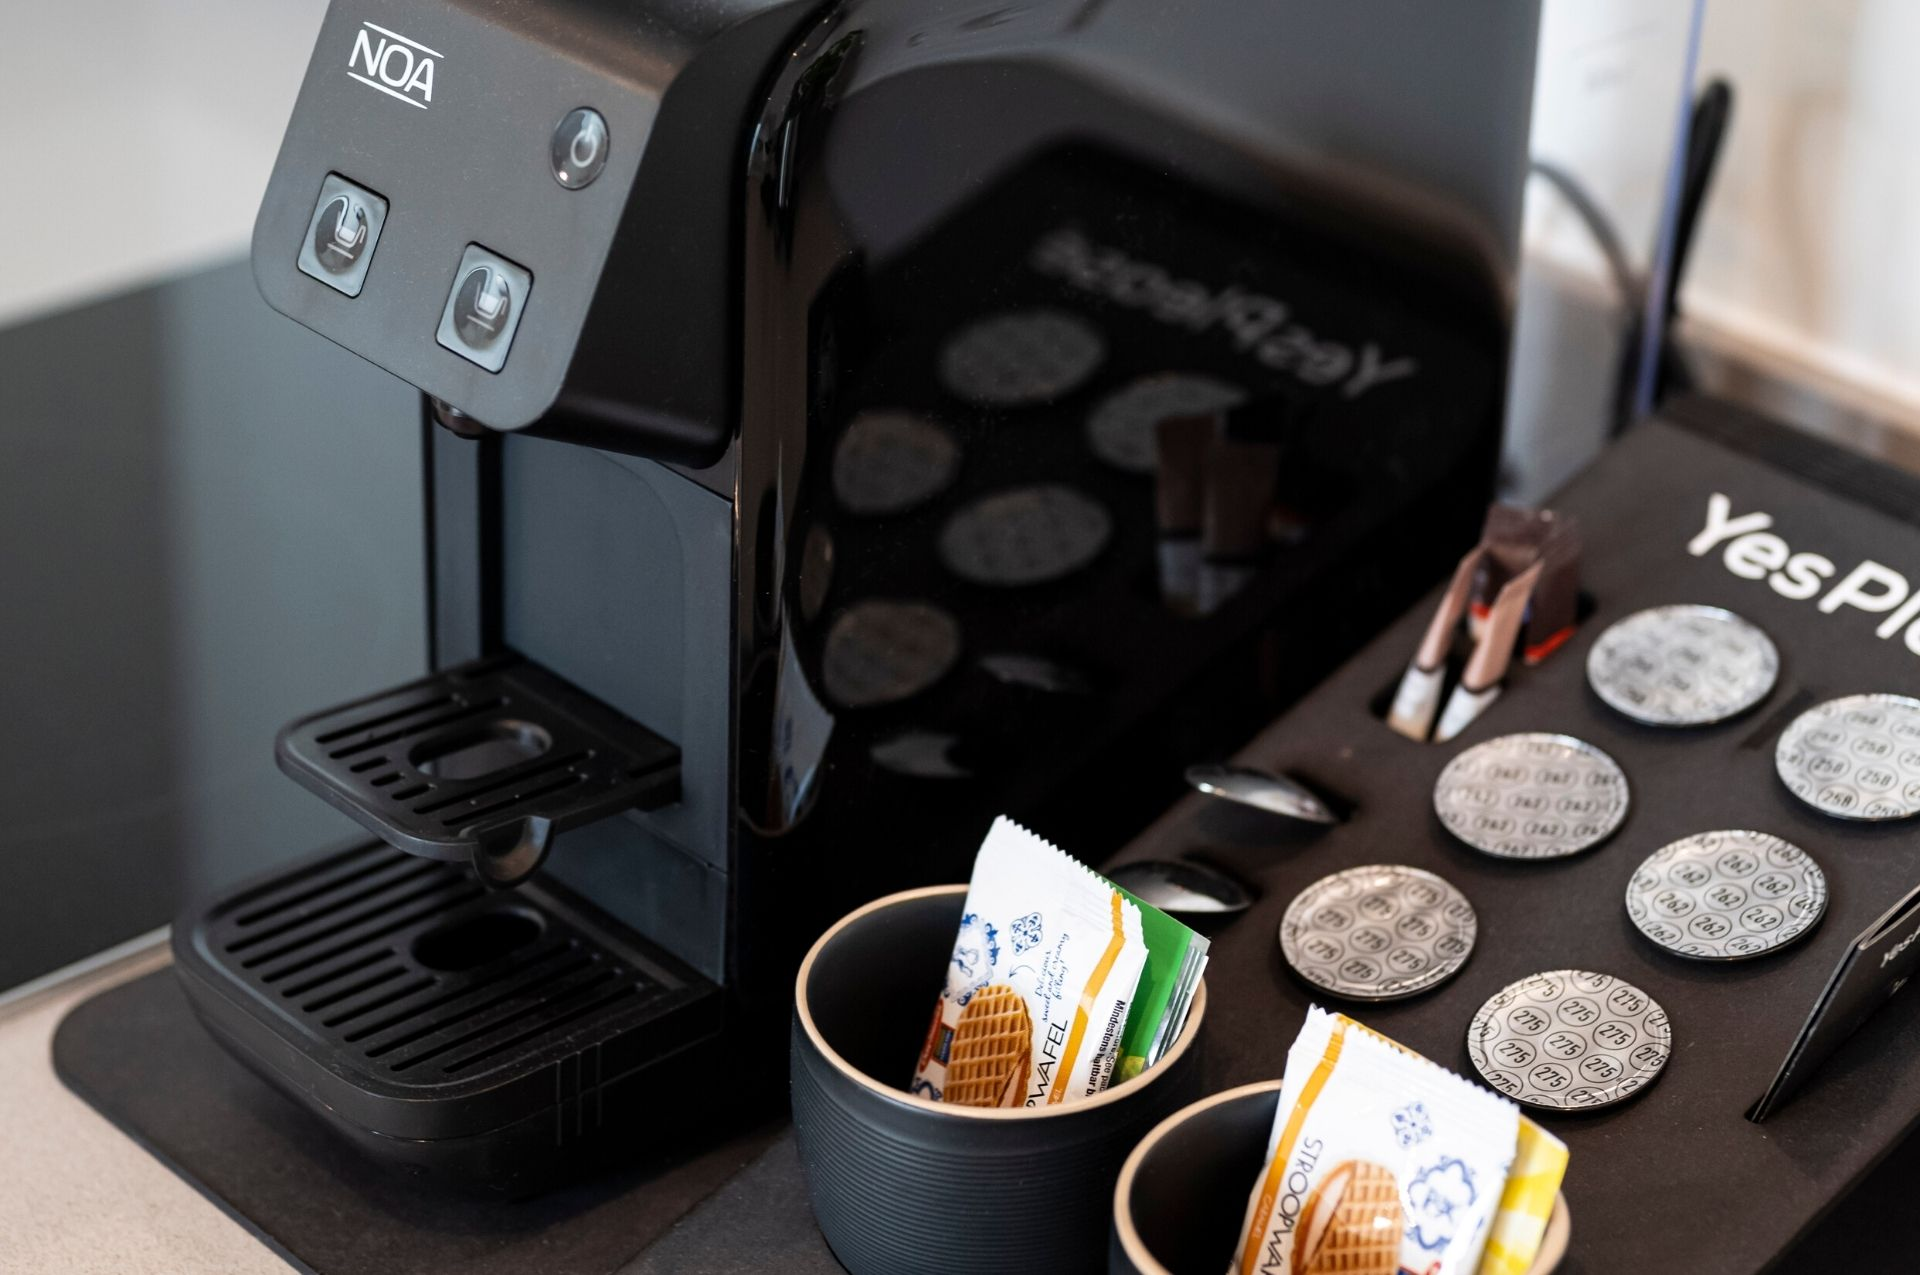 PREMIER SUITES PLUS Amsterdam Superior Appartement Koffiemachine